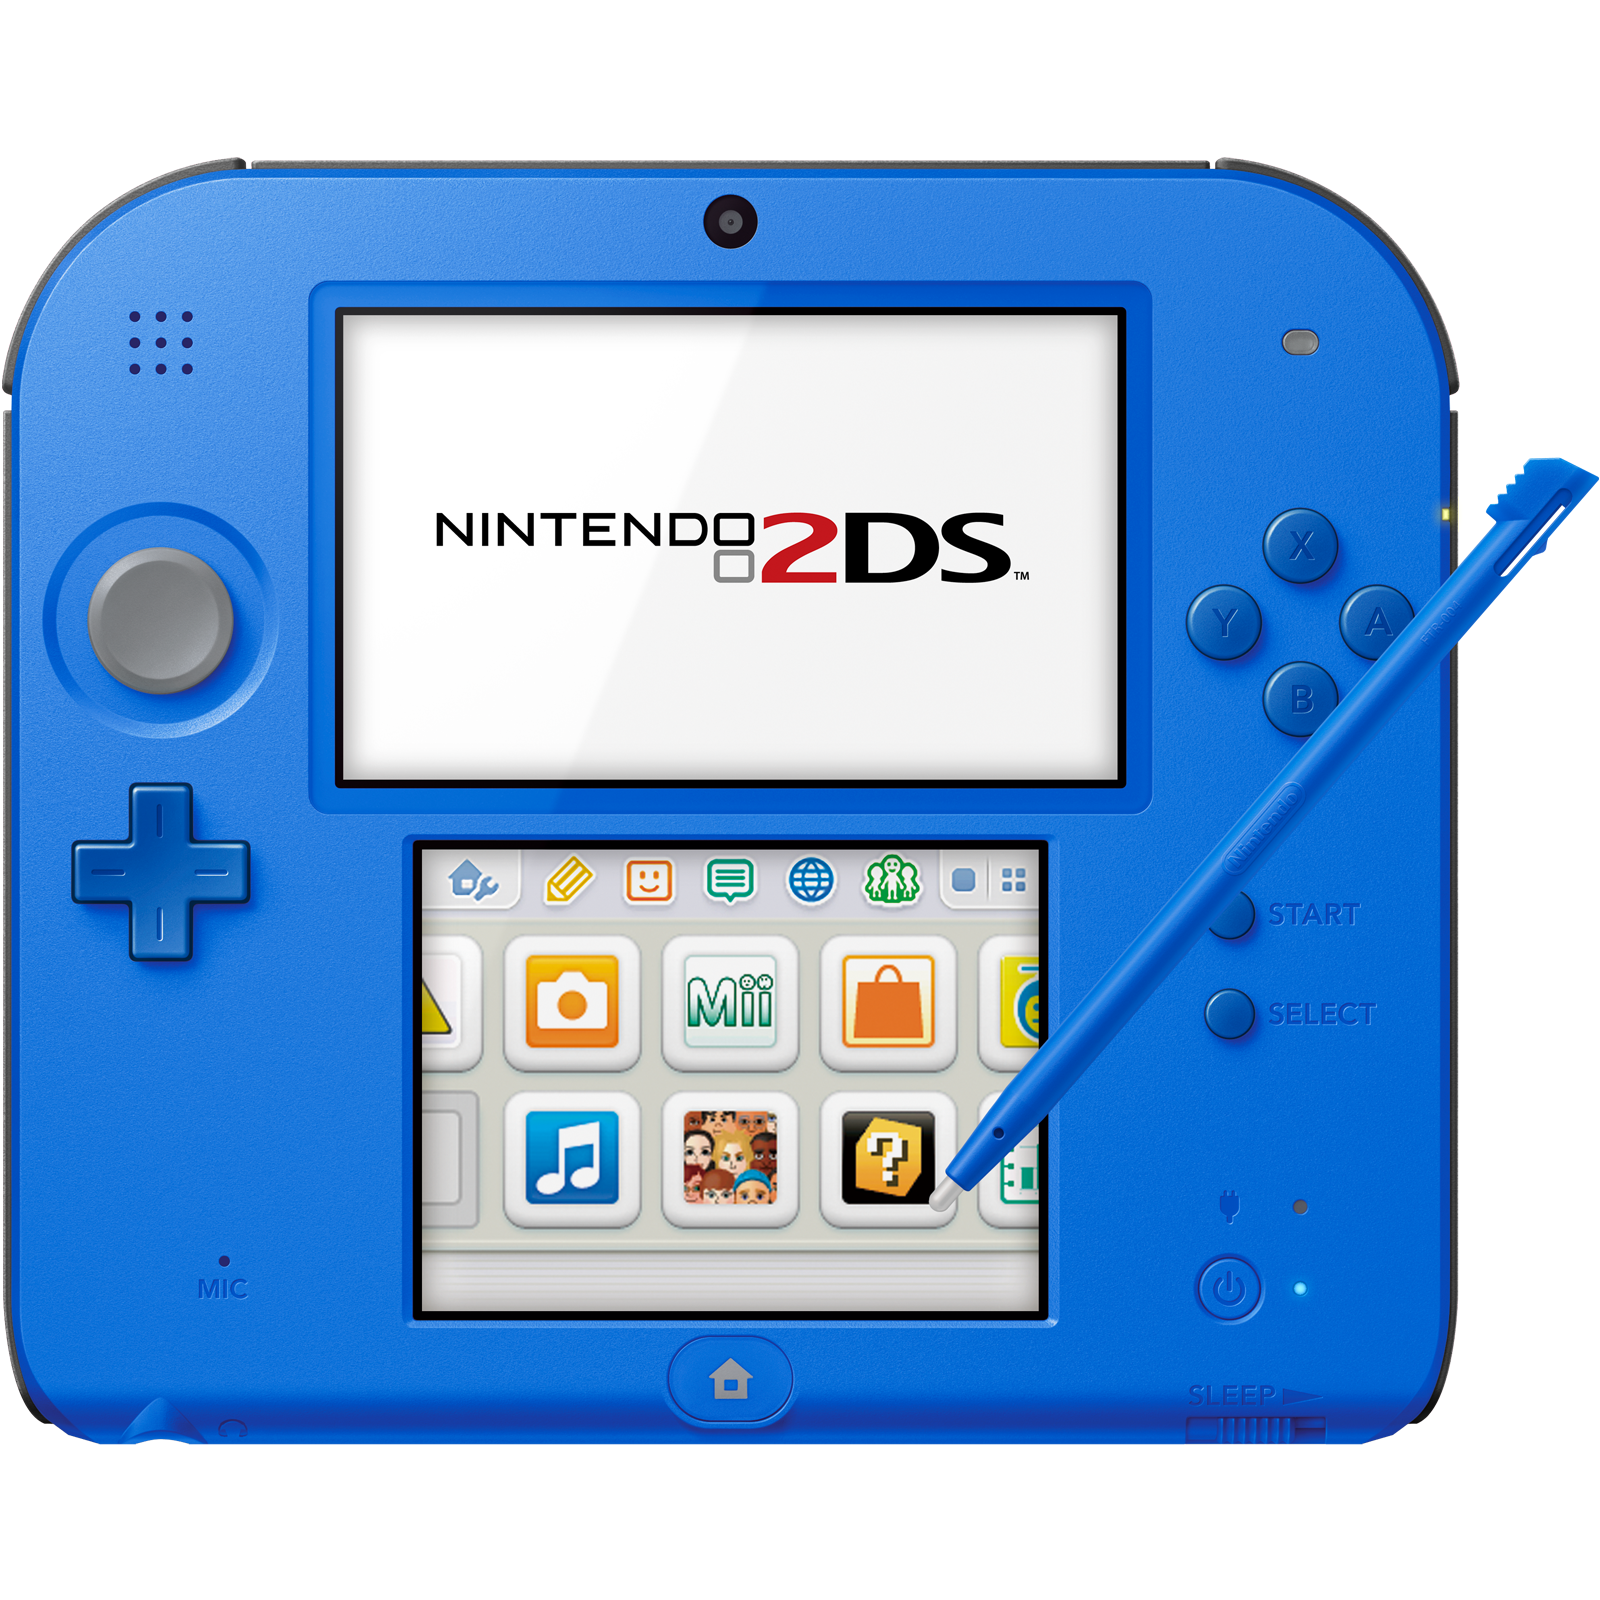 Nintendo 2ds Electric Blue 2 Factory Refurbished By